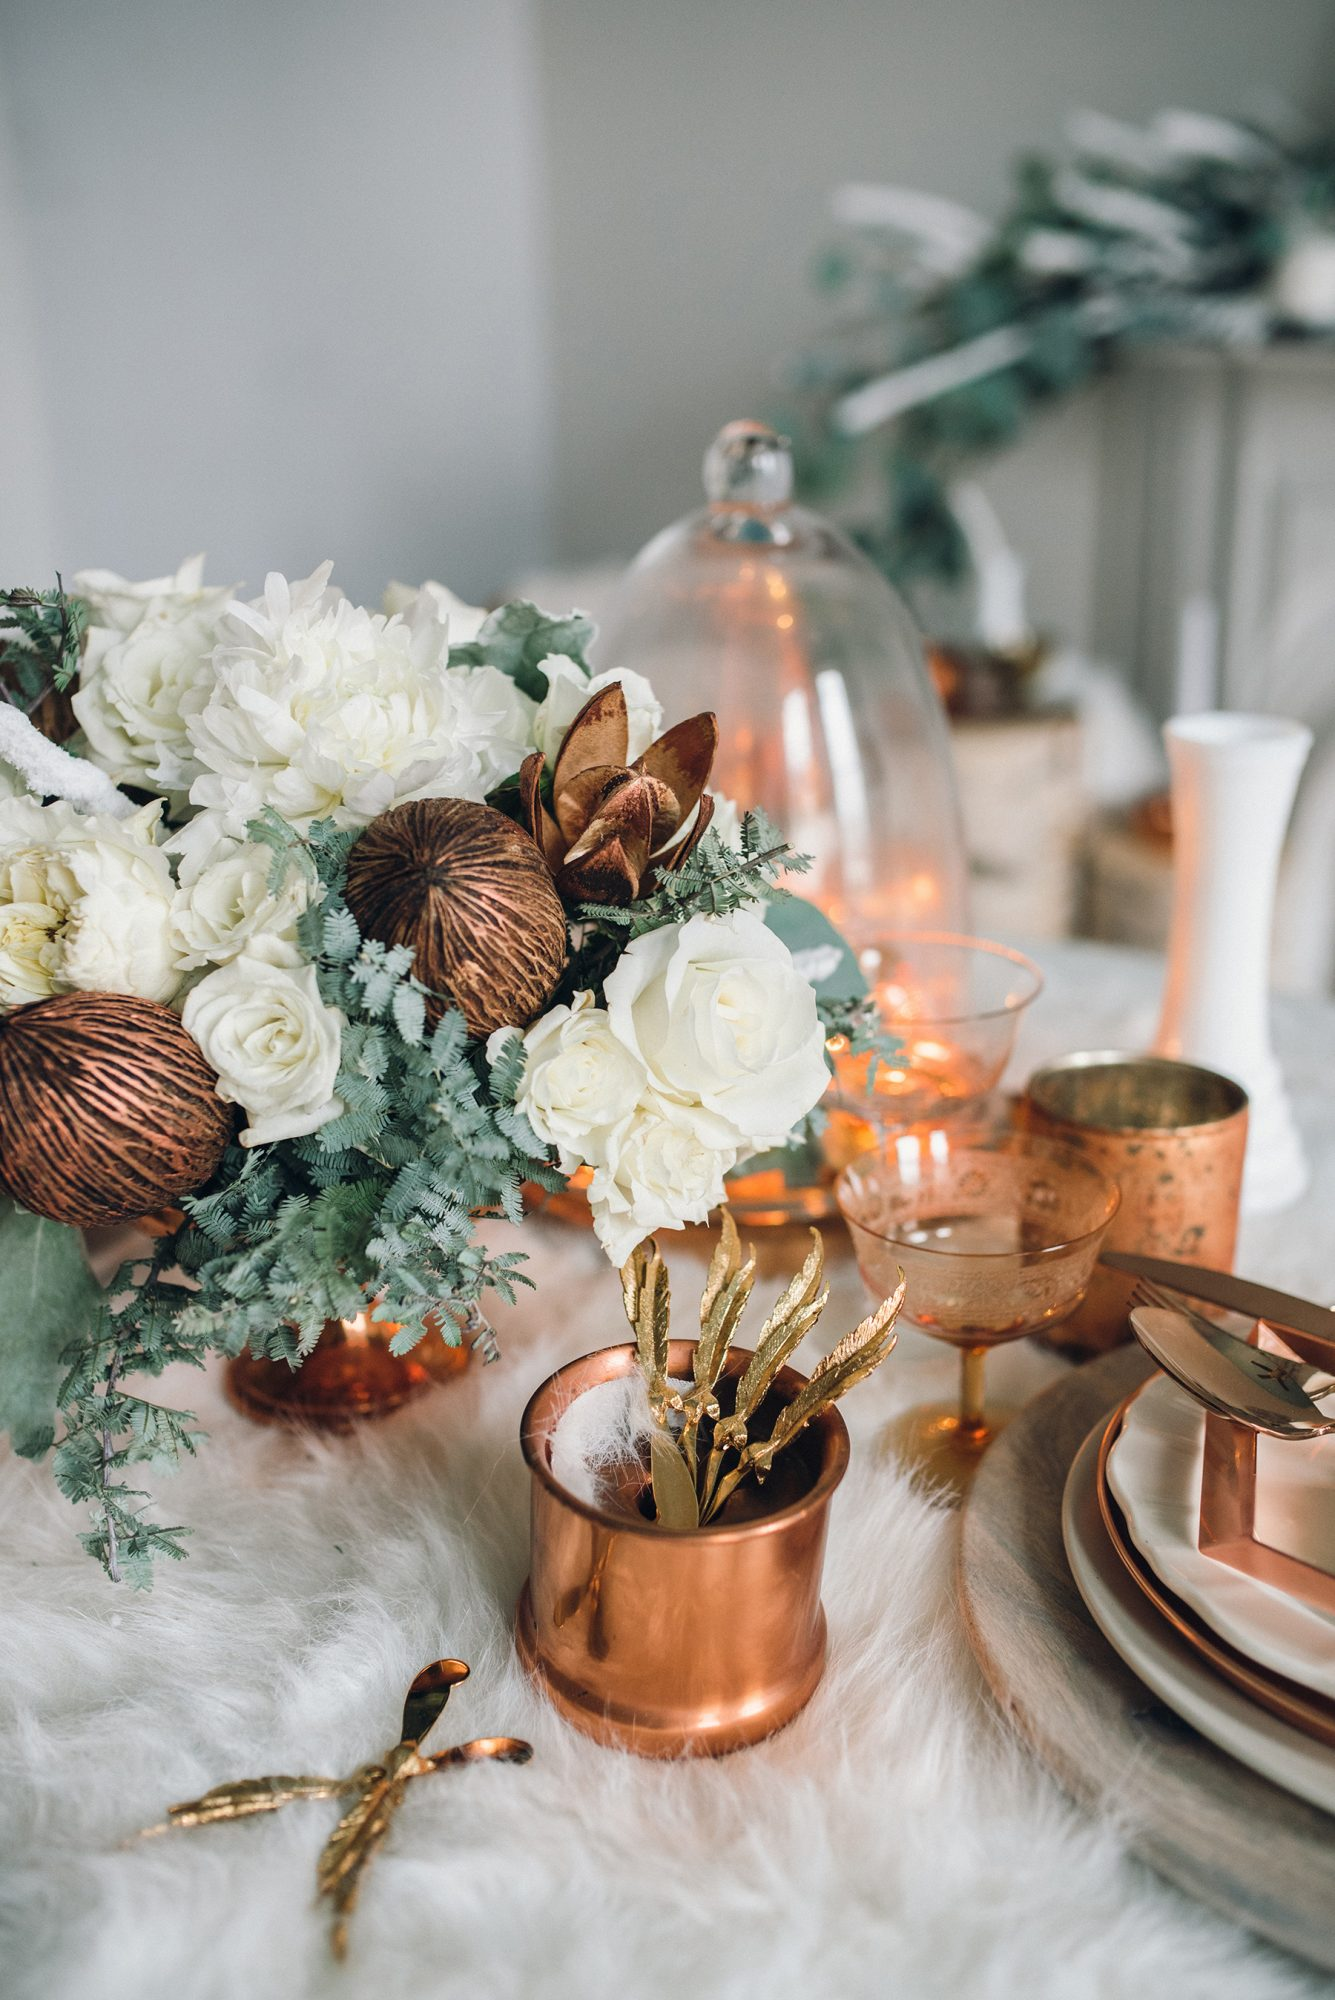 Green, Copper, and White Color Inspiration